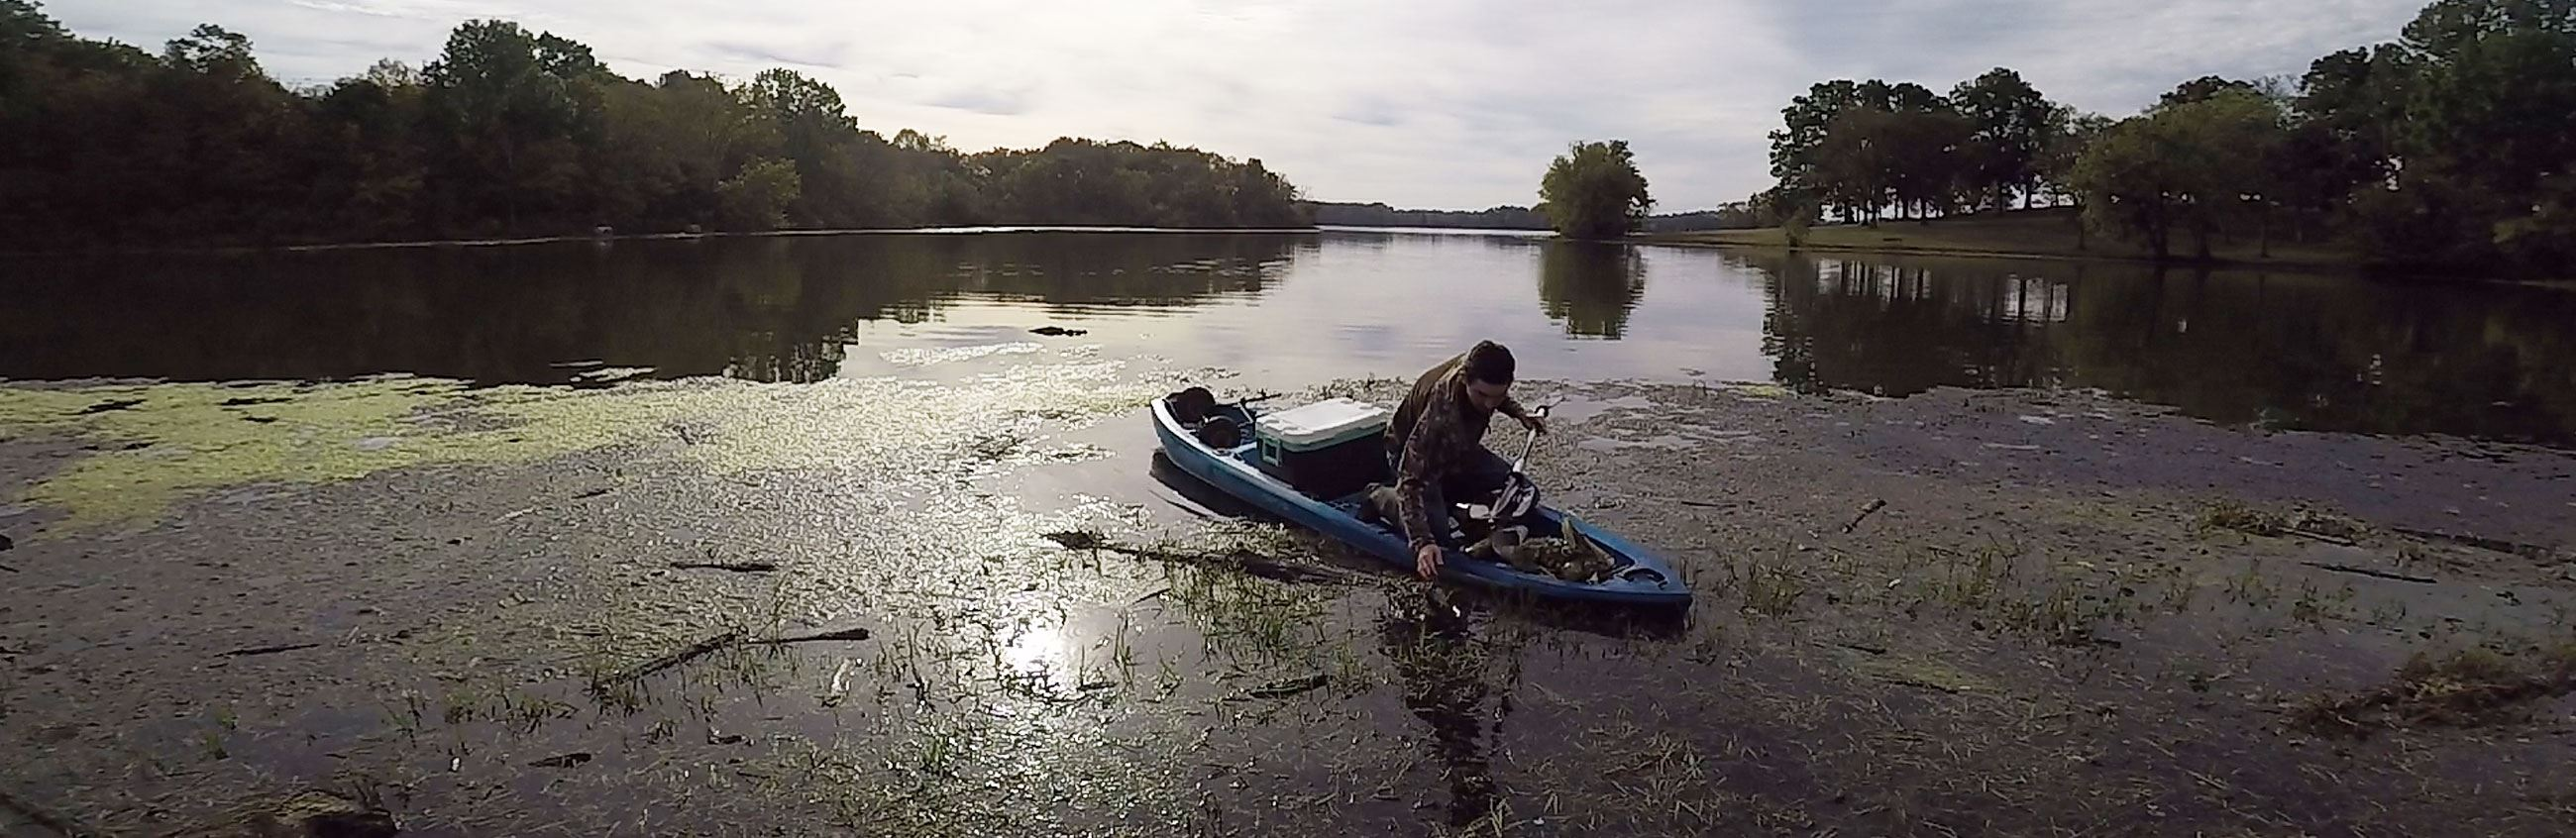 Cleanup Volunteer on Old Hickory Lake